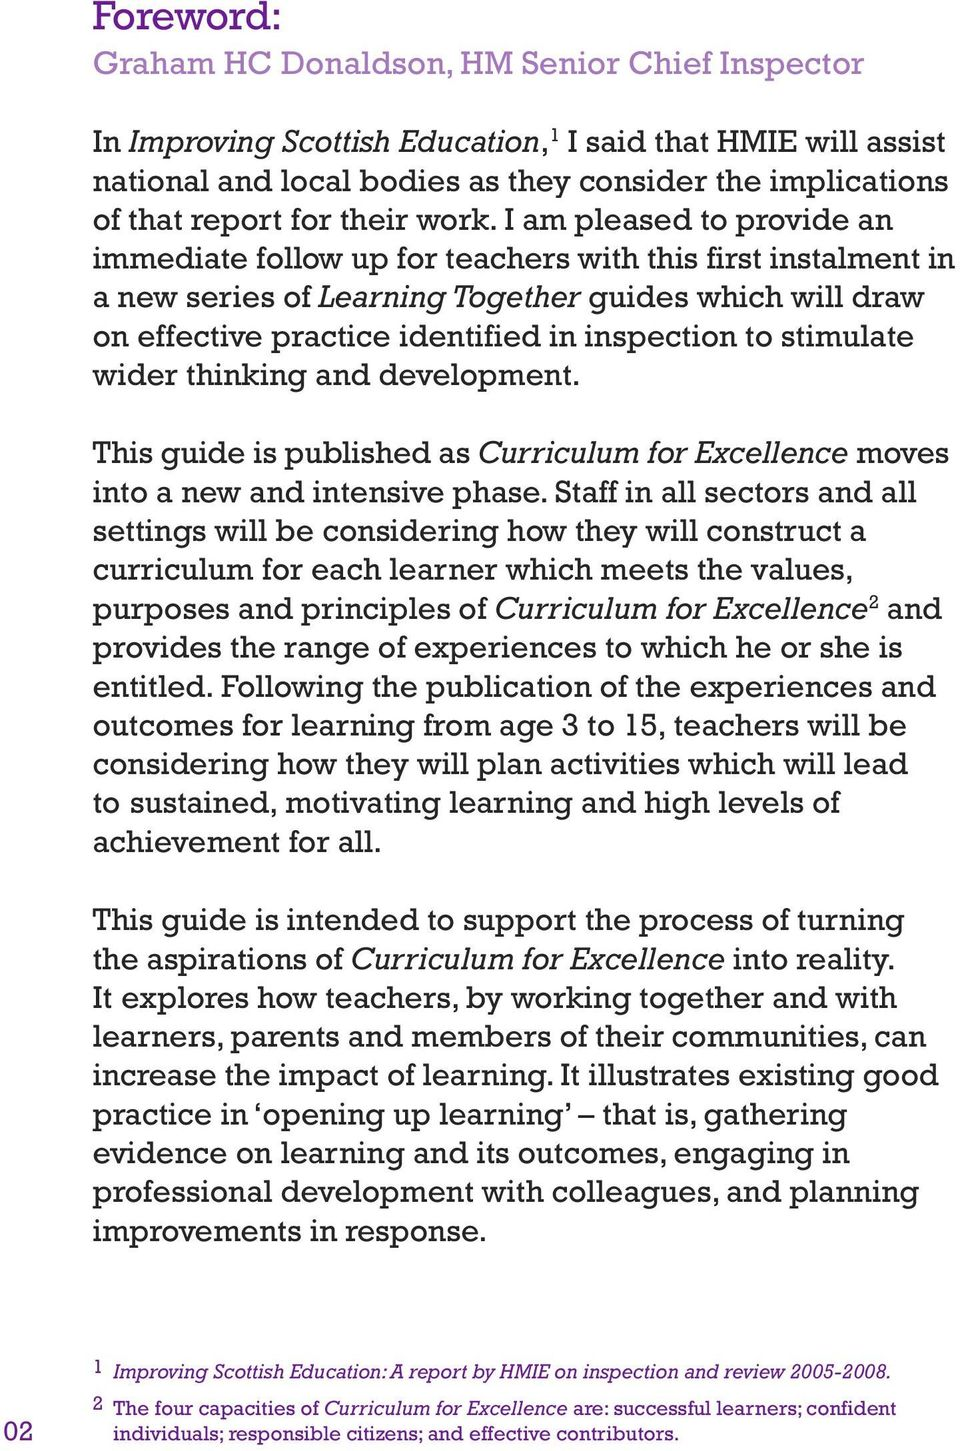 I am pleased to provide an immediate follow up for teachers with this first instalment in a new series of Learning Together guides which will draw on effective practice identified in inspection to